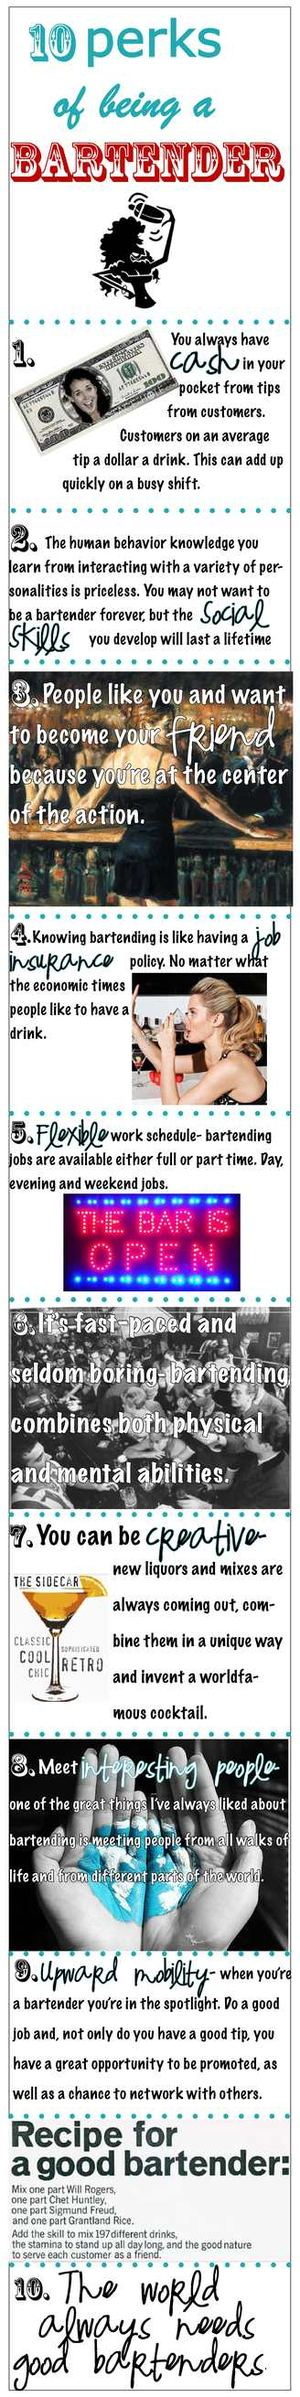 10 Perks of Being a Bartender Infographic